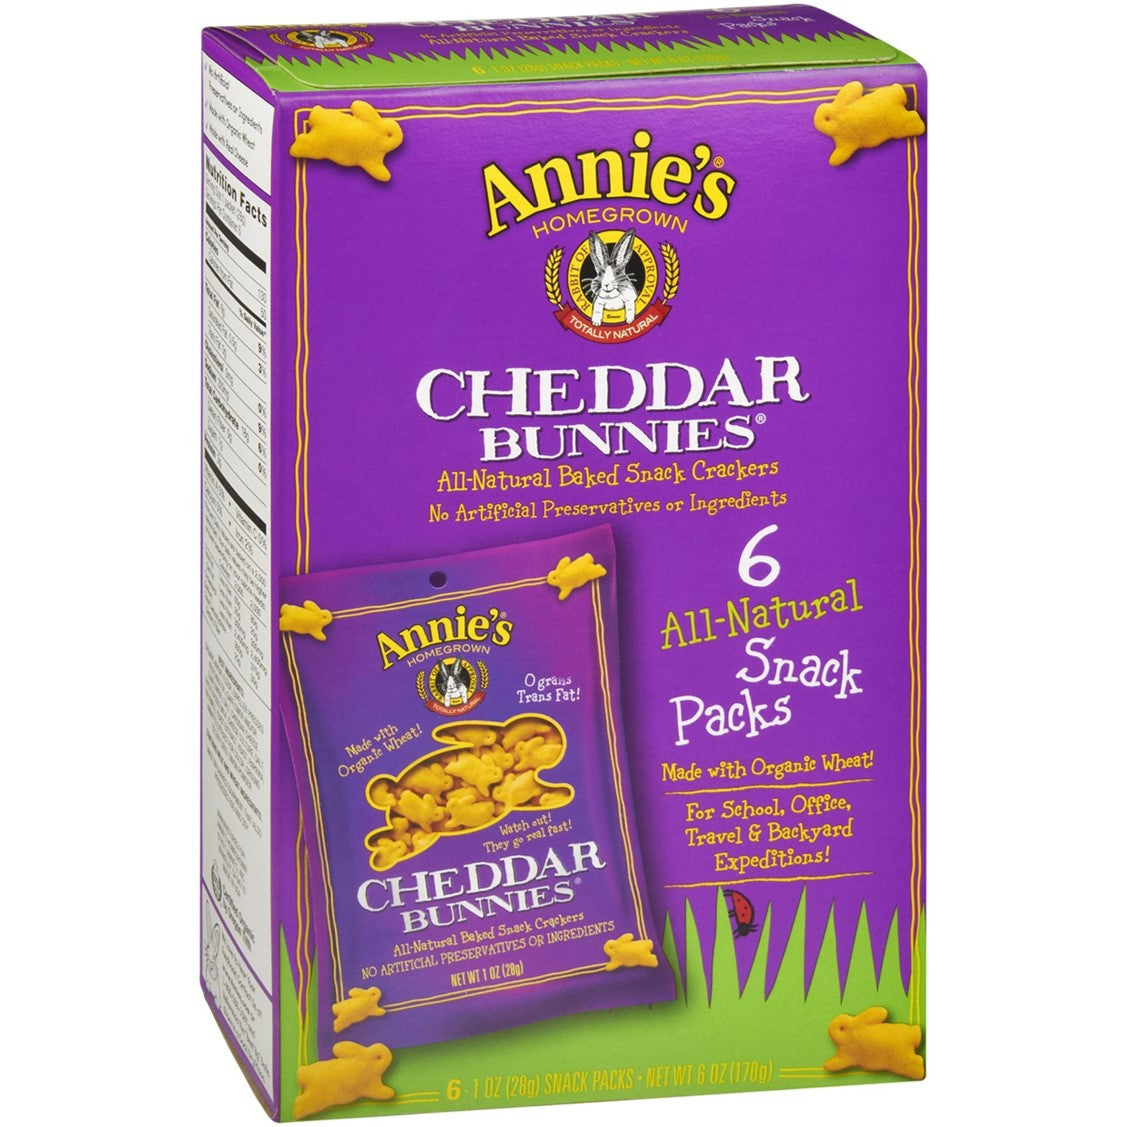 Annie's Homegrown Cheddar Bunnies - Original (Snack Pack), 6 x 28g.